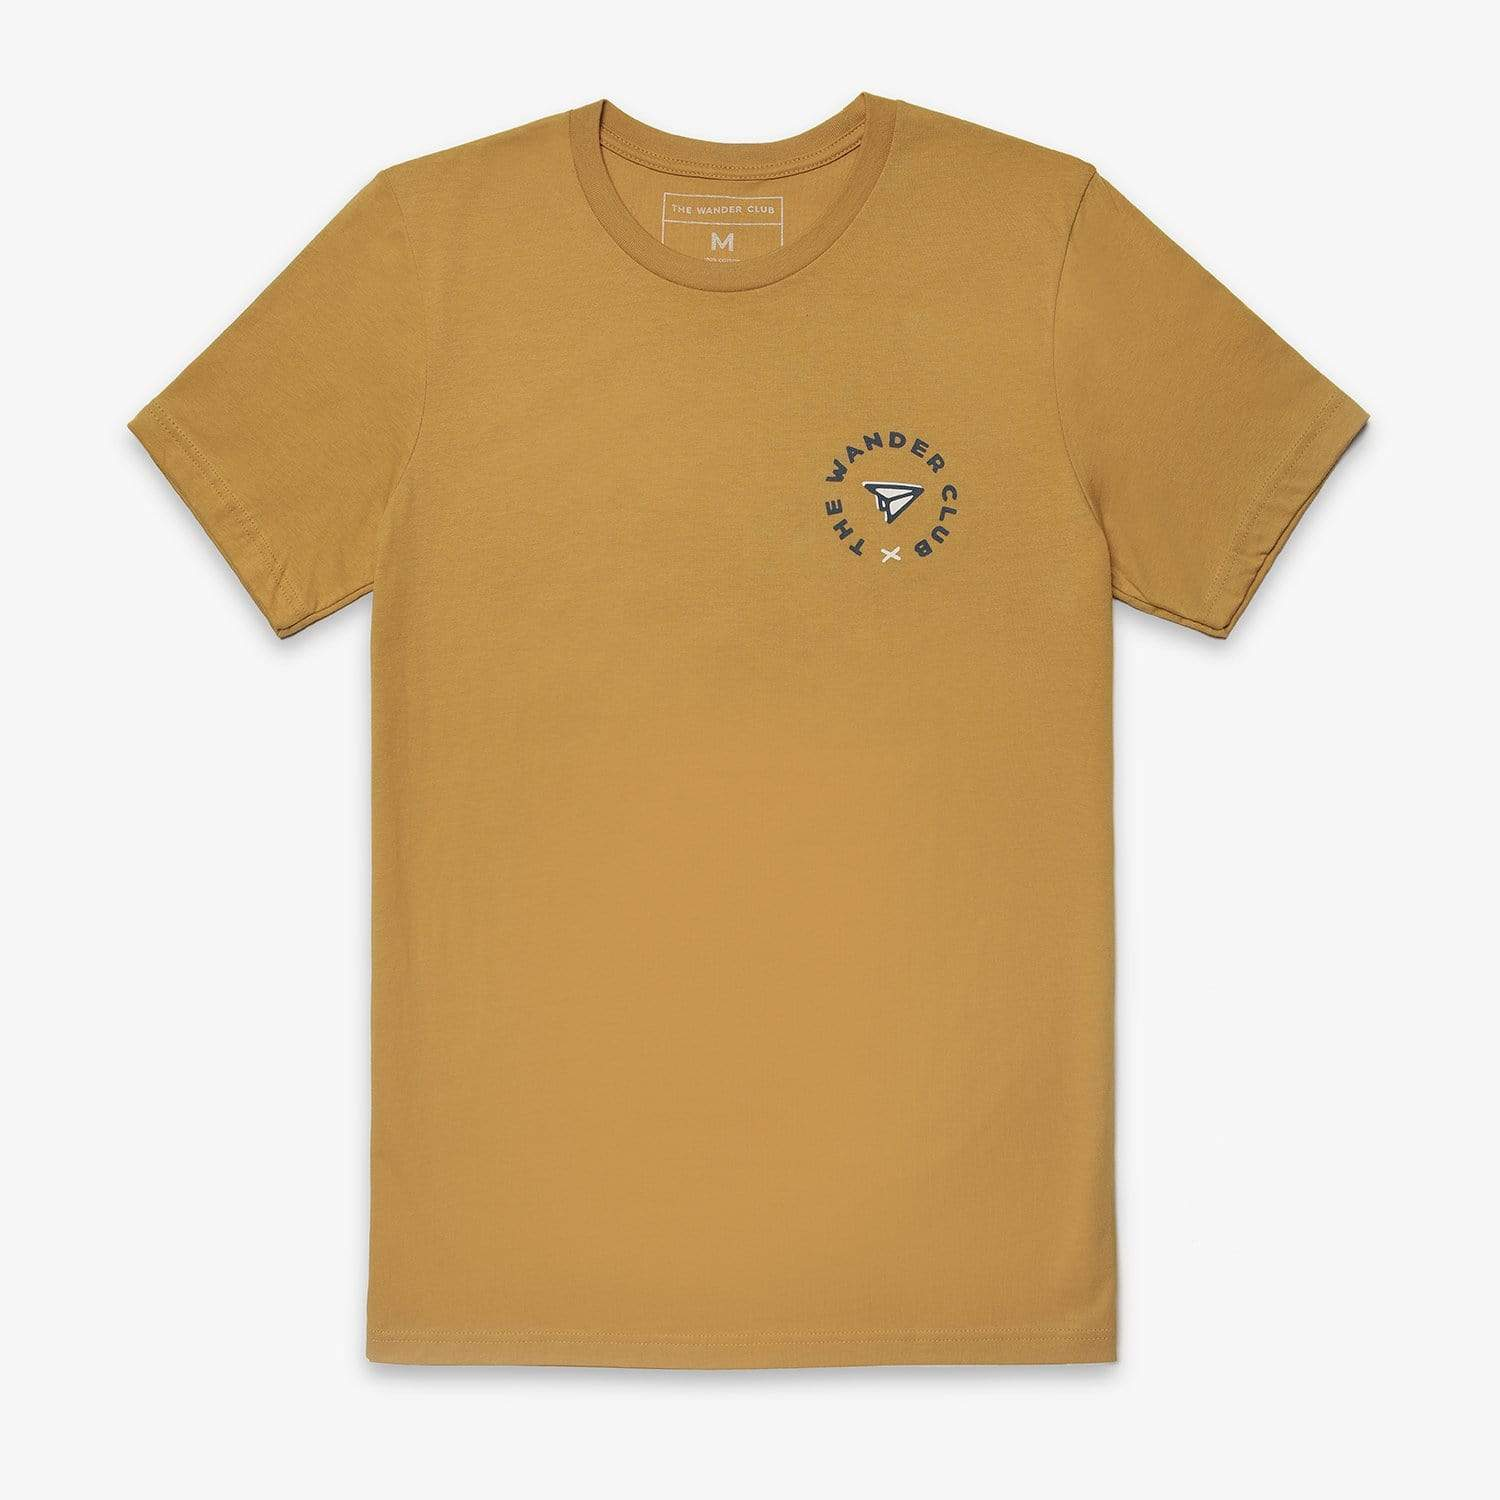 It's Time to Go - Unisex Tee (Mustard)